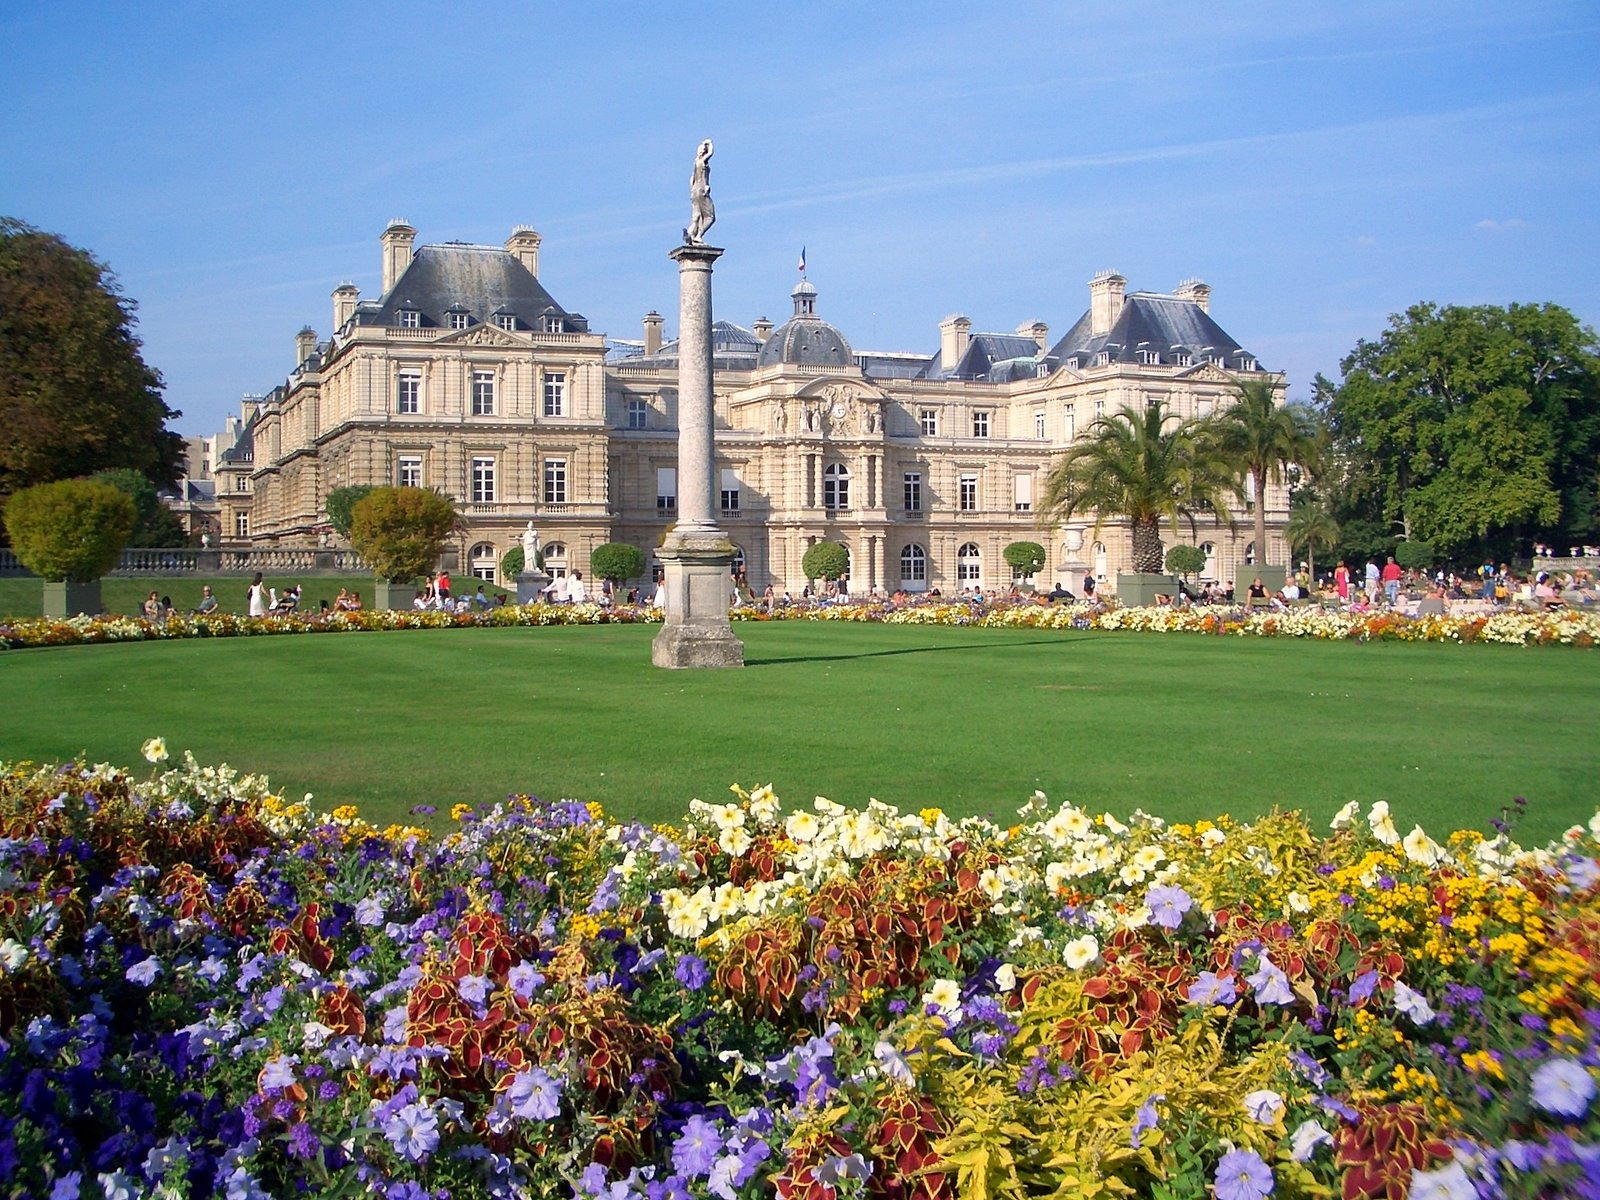 Le Jardin du Luxembourg (the Luxembourg Garden), Paris, France